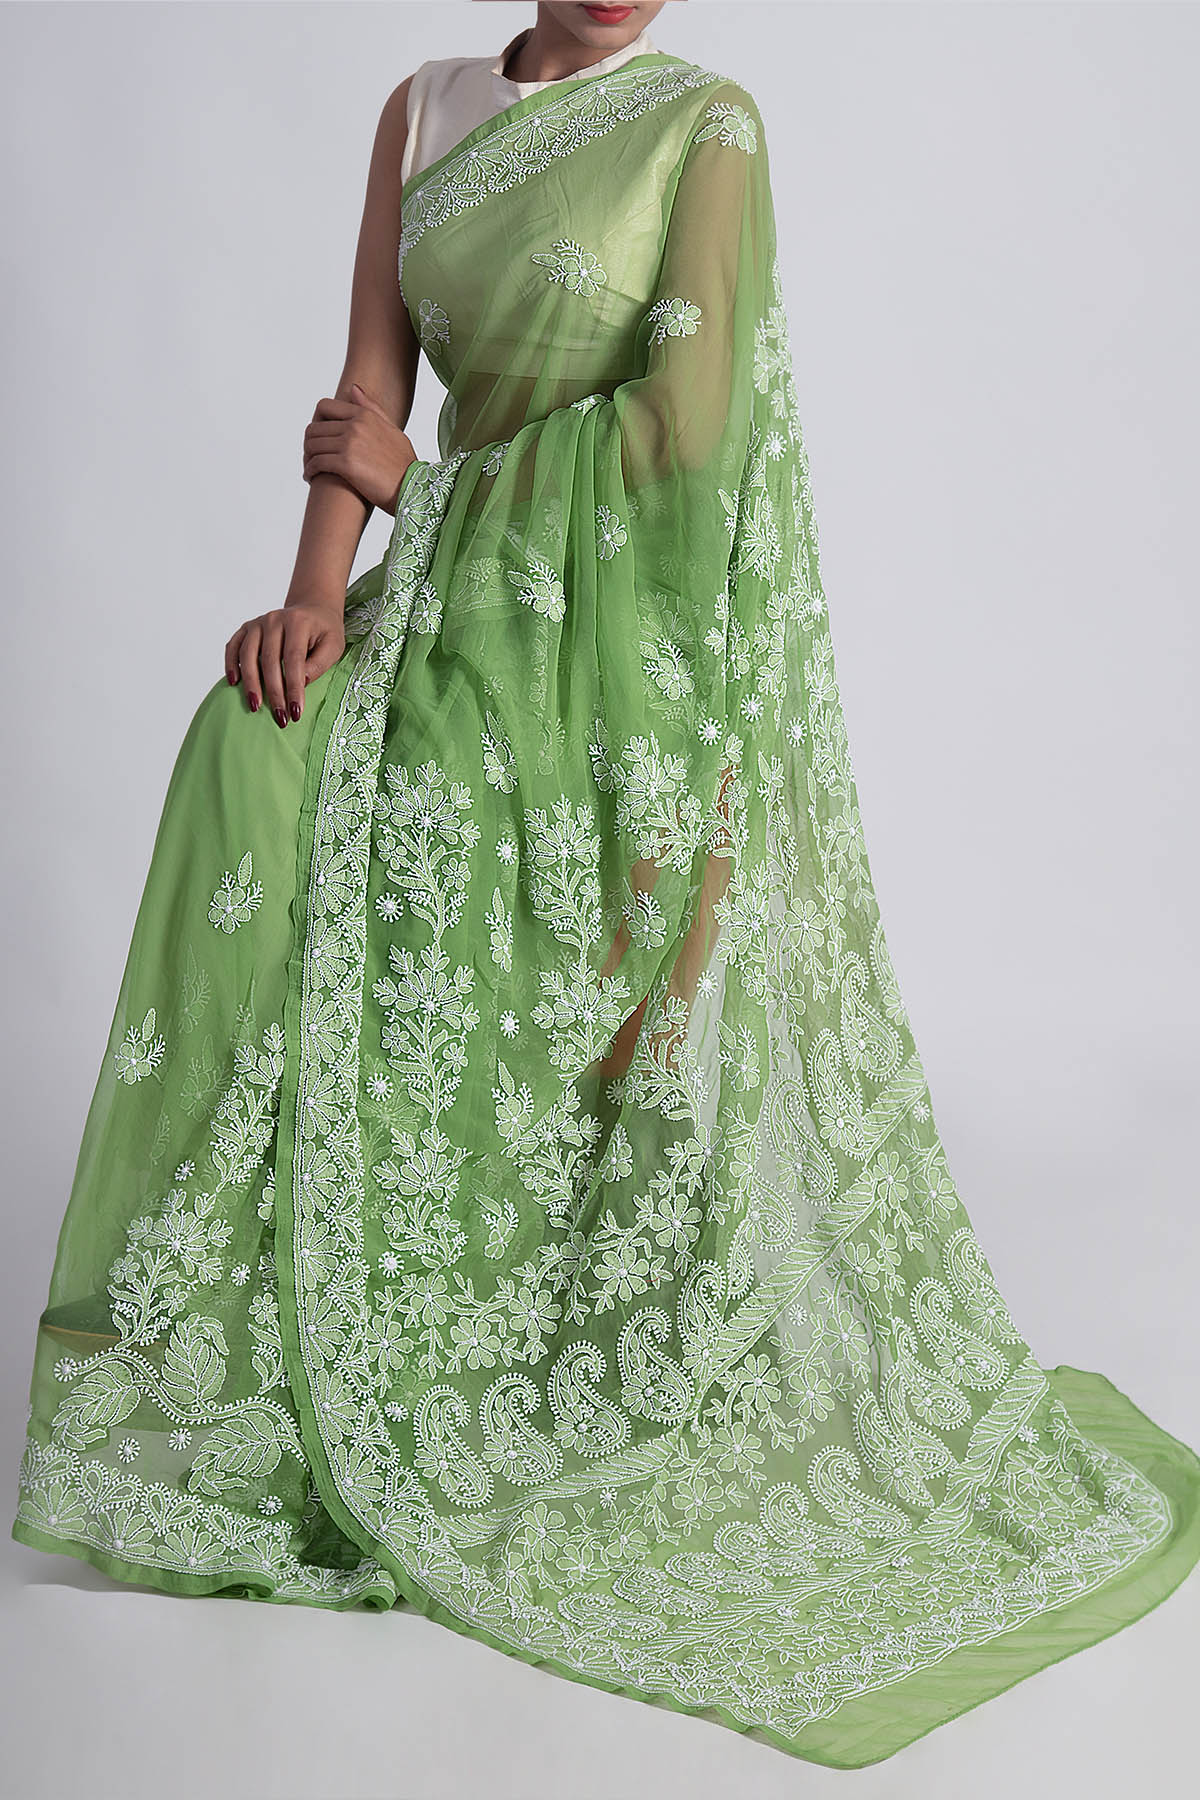 Green Colour Hand Embroidered Designer Lucknowi Chikankari Saree (With Blouse - Georgette) GA250621